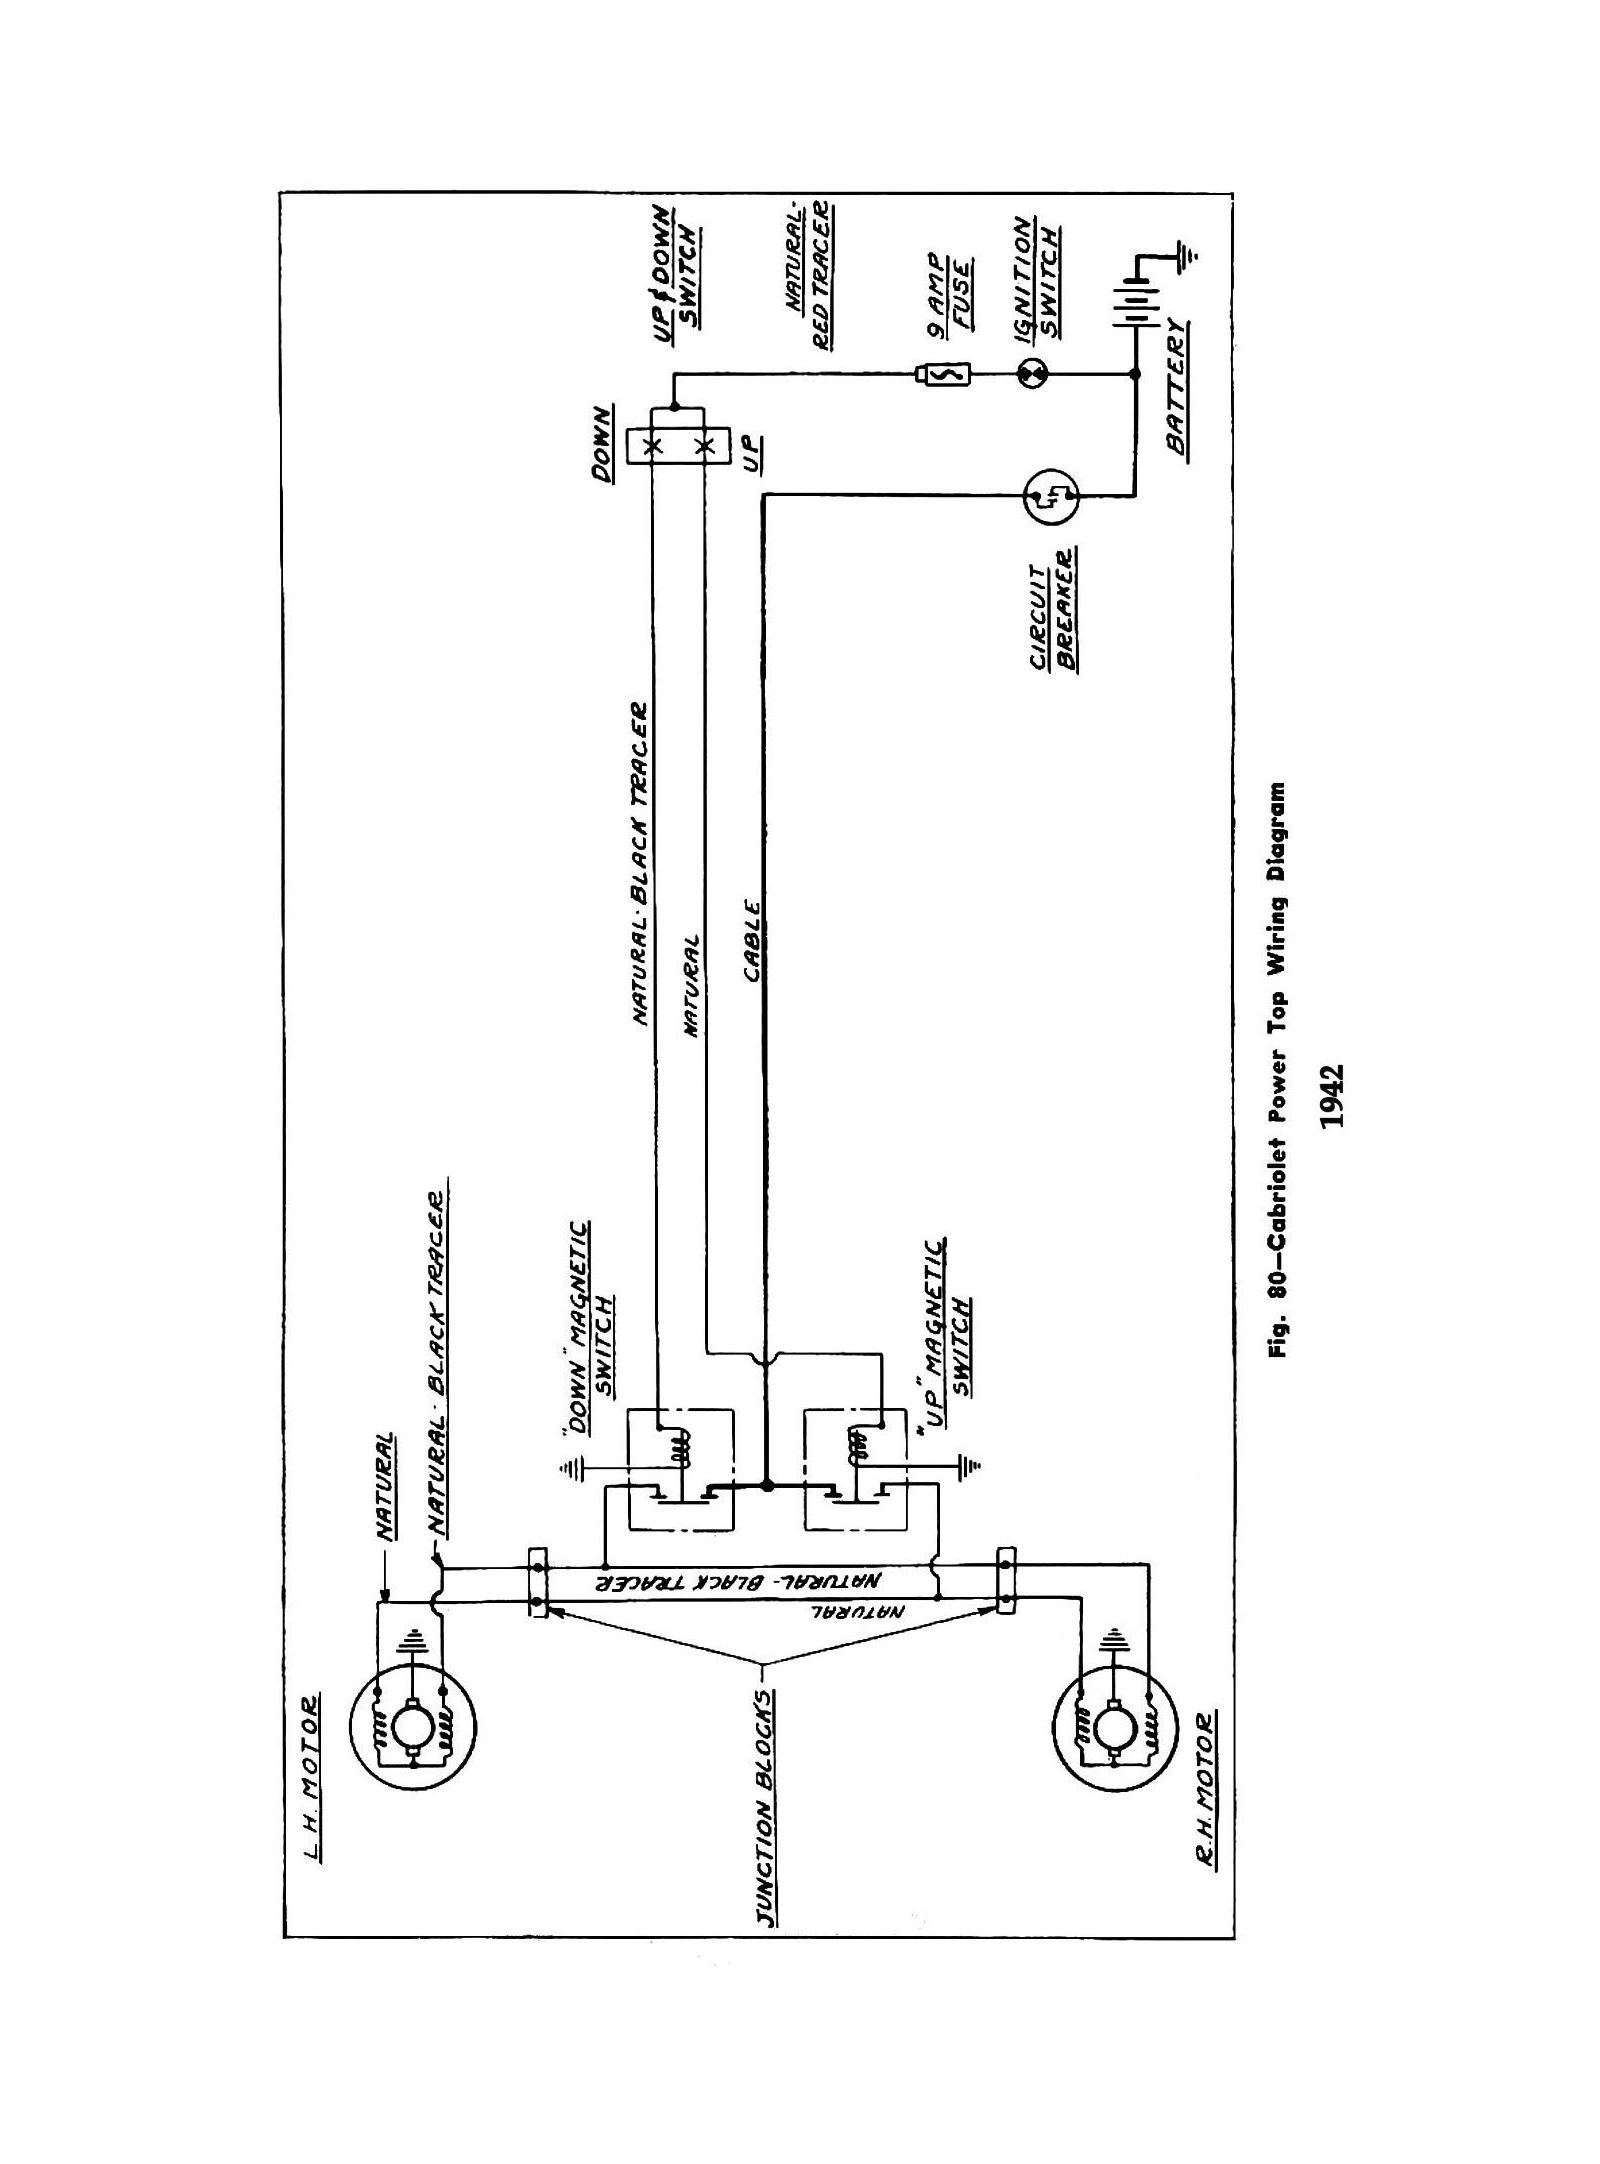 1939 Dodge Truck Wiring Schematic : 33 Wiring Diagram